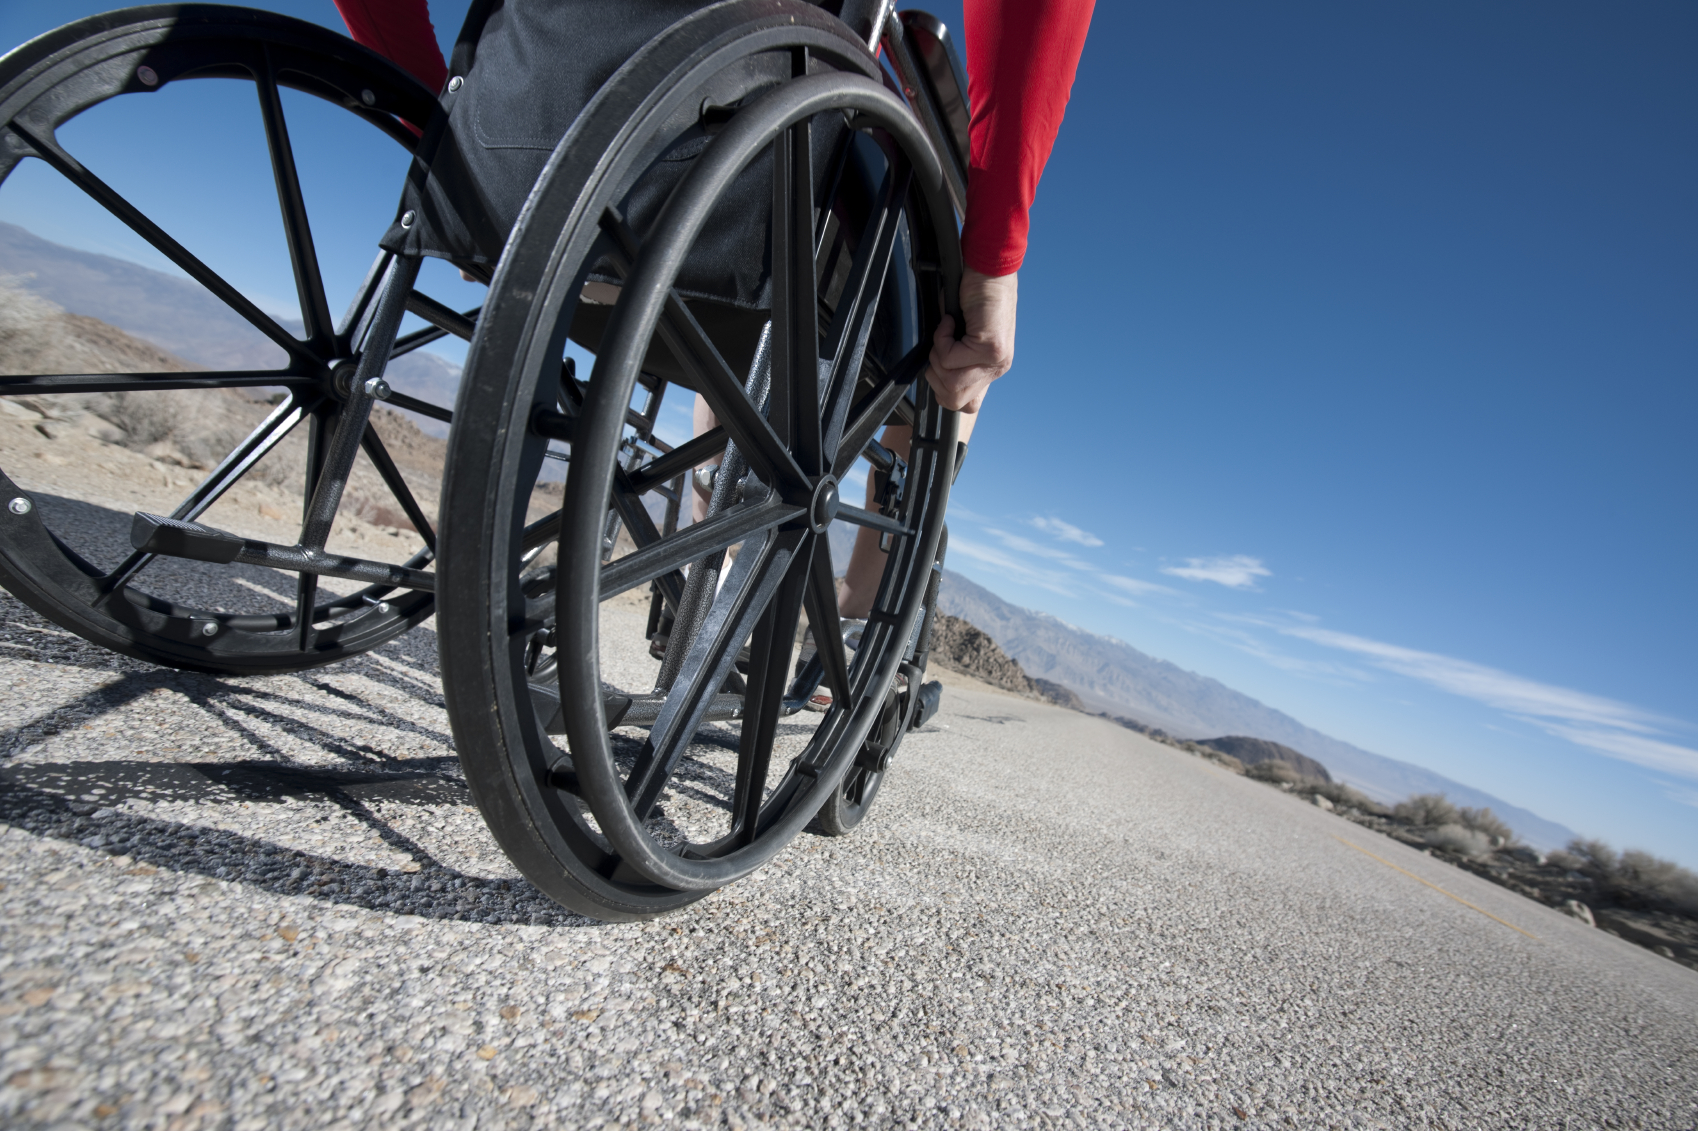 Wheelchair user looking down a long, empty road